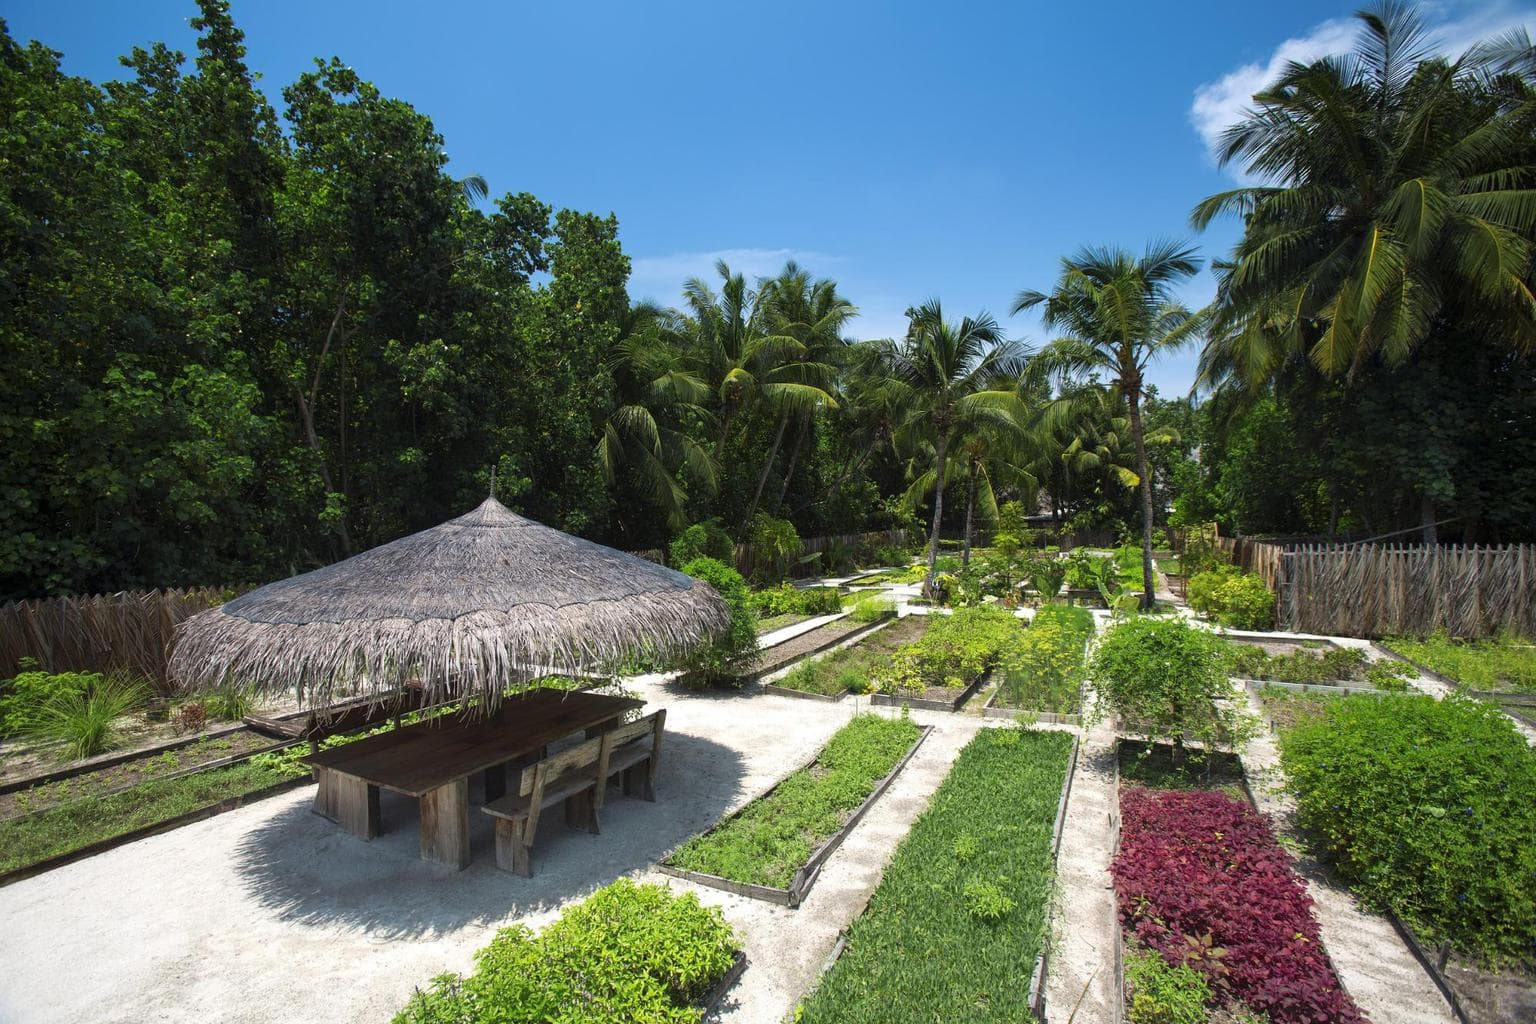 Organic garden at Gili Lankanfushi - Courtesy of Gili Lankanfushi